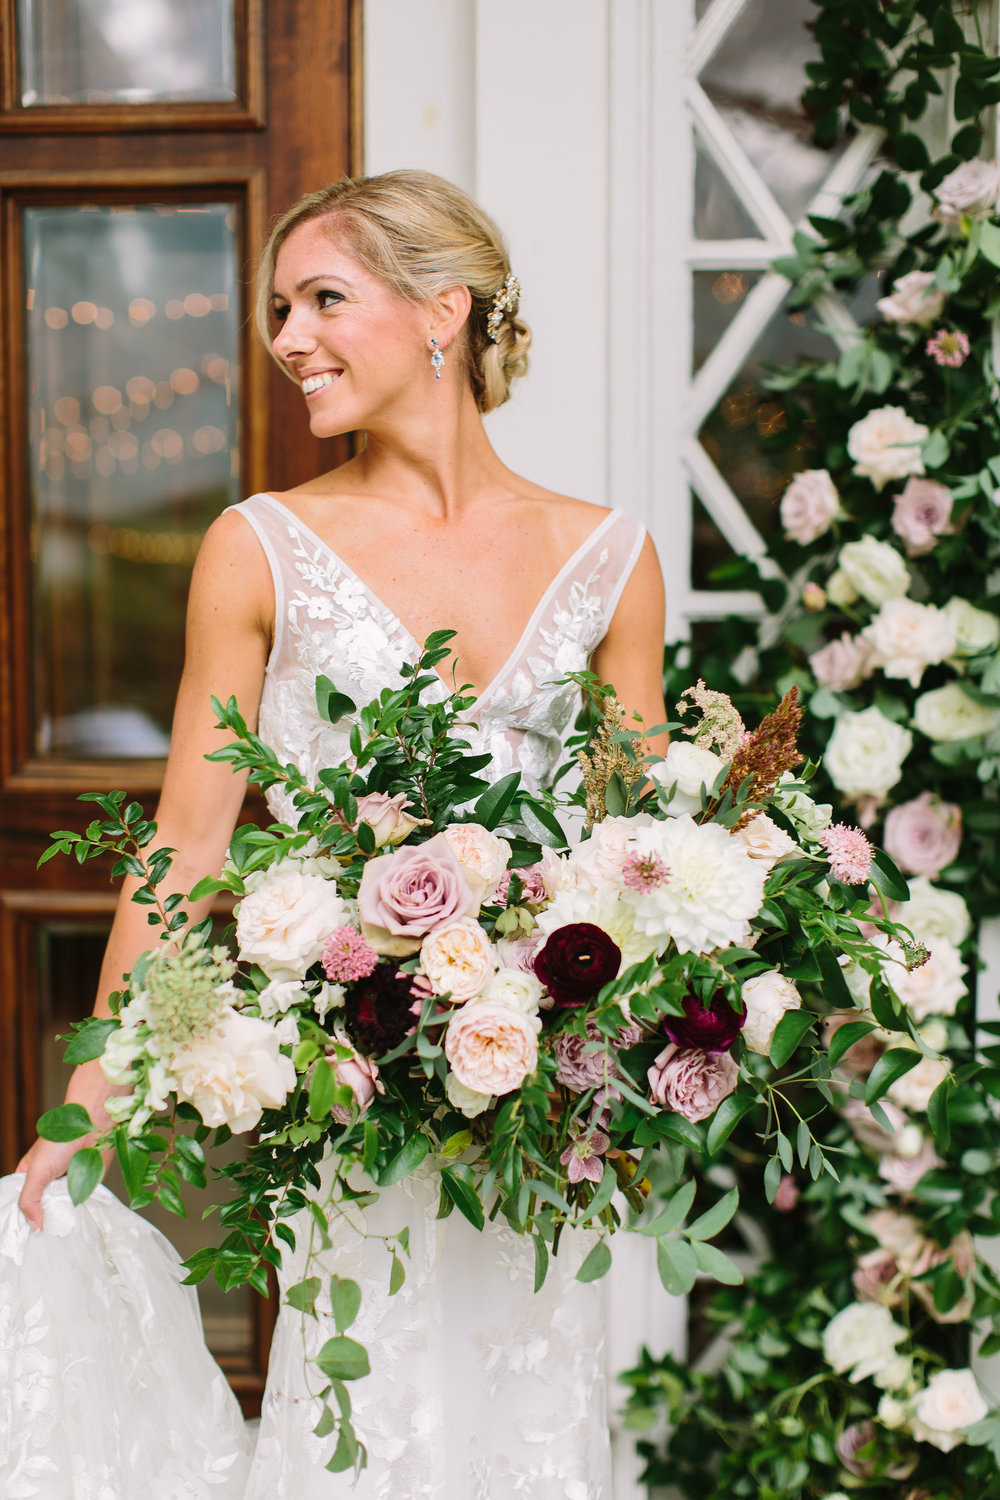 Natural, asymmetrical bridal bouquet with soft mauve garden roses, eggplant ranunculus, and trailing greenery // Nashville Wedding Floral Design